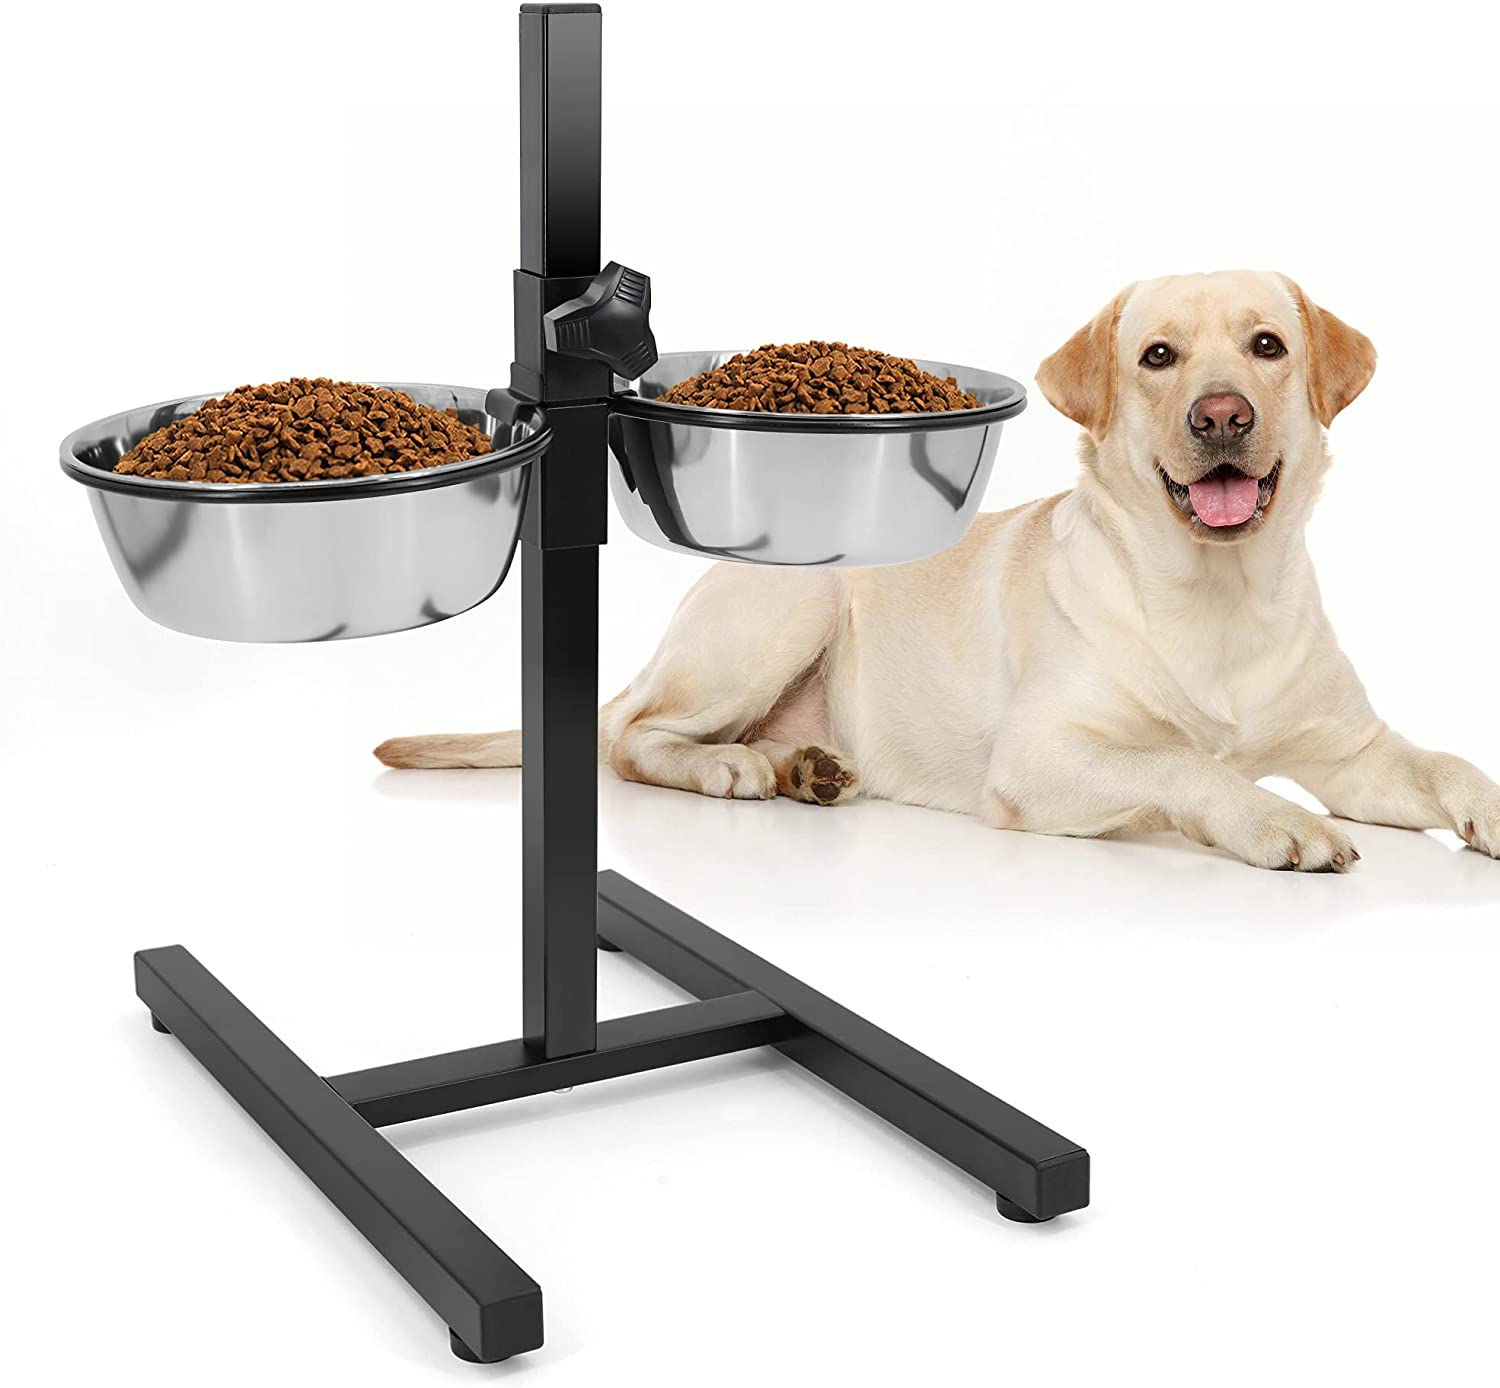 Elevated Double Stainless Steel Dog Bowls with Iron Stand Rack Adjustable Raised Height Dog Food and Water Feeder Pet Dining Table Pet Diner Dish Bowls for Dog Cat Puppy Rabbit Guinea Pig Chinchilla